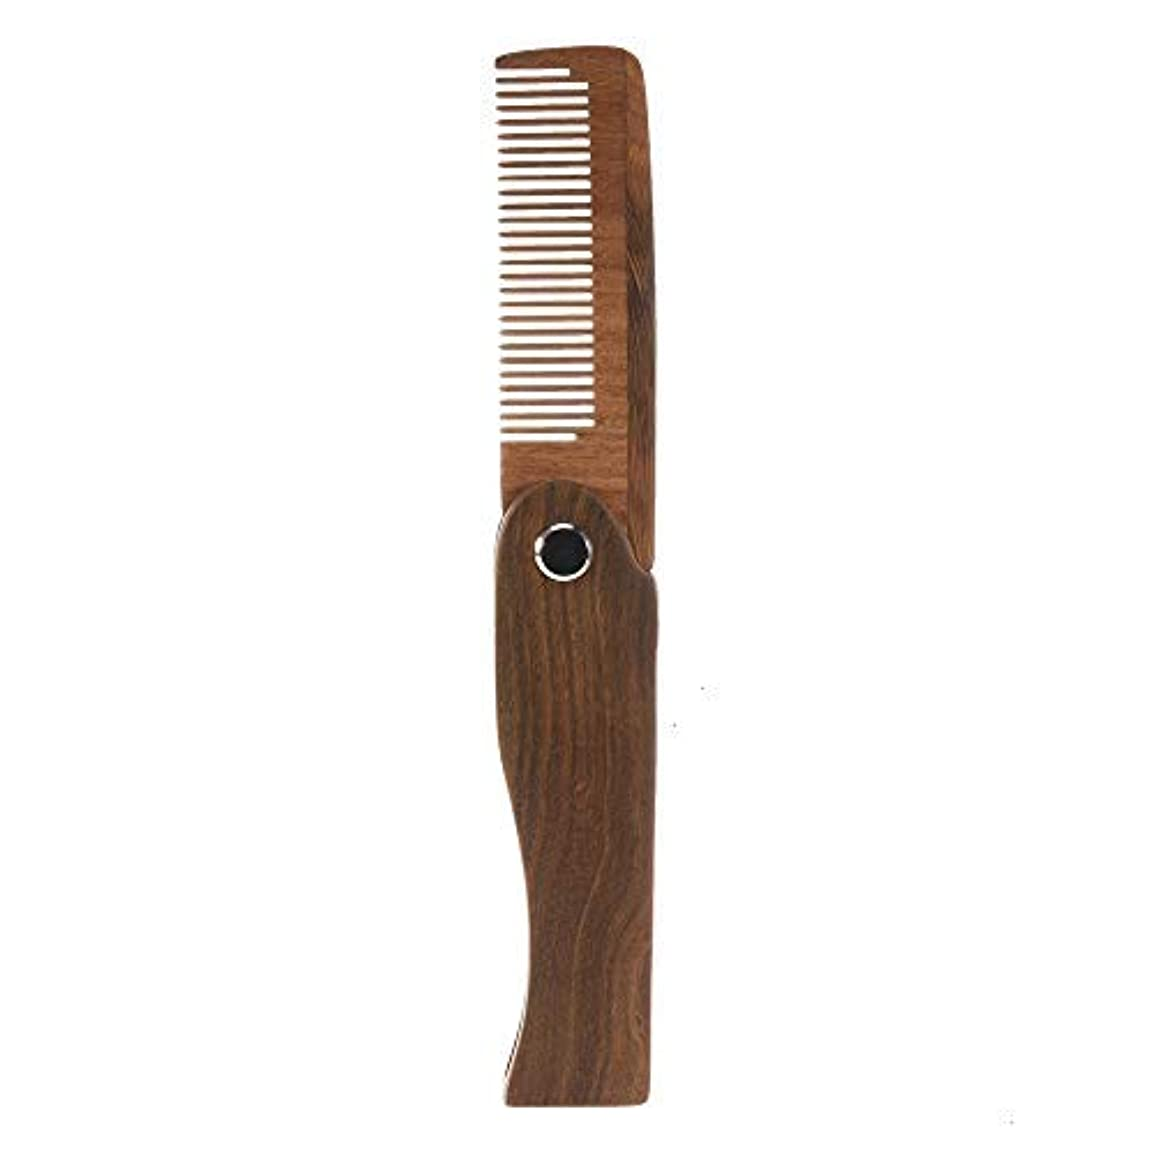 ジェム累積プラグFeeko Folding Wooden Comb, 1 PC Pocket Size Hair Beard Fold Wooden Comb Durable Anti-Static Sandalwood Comb Every...